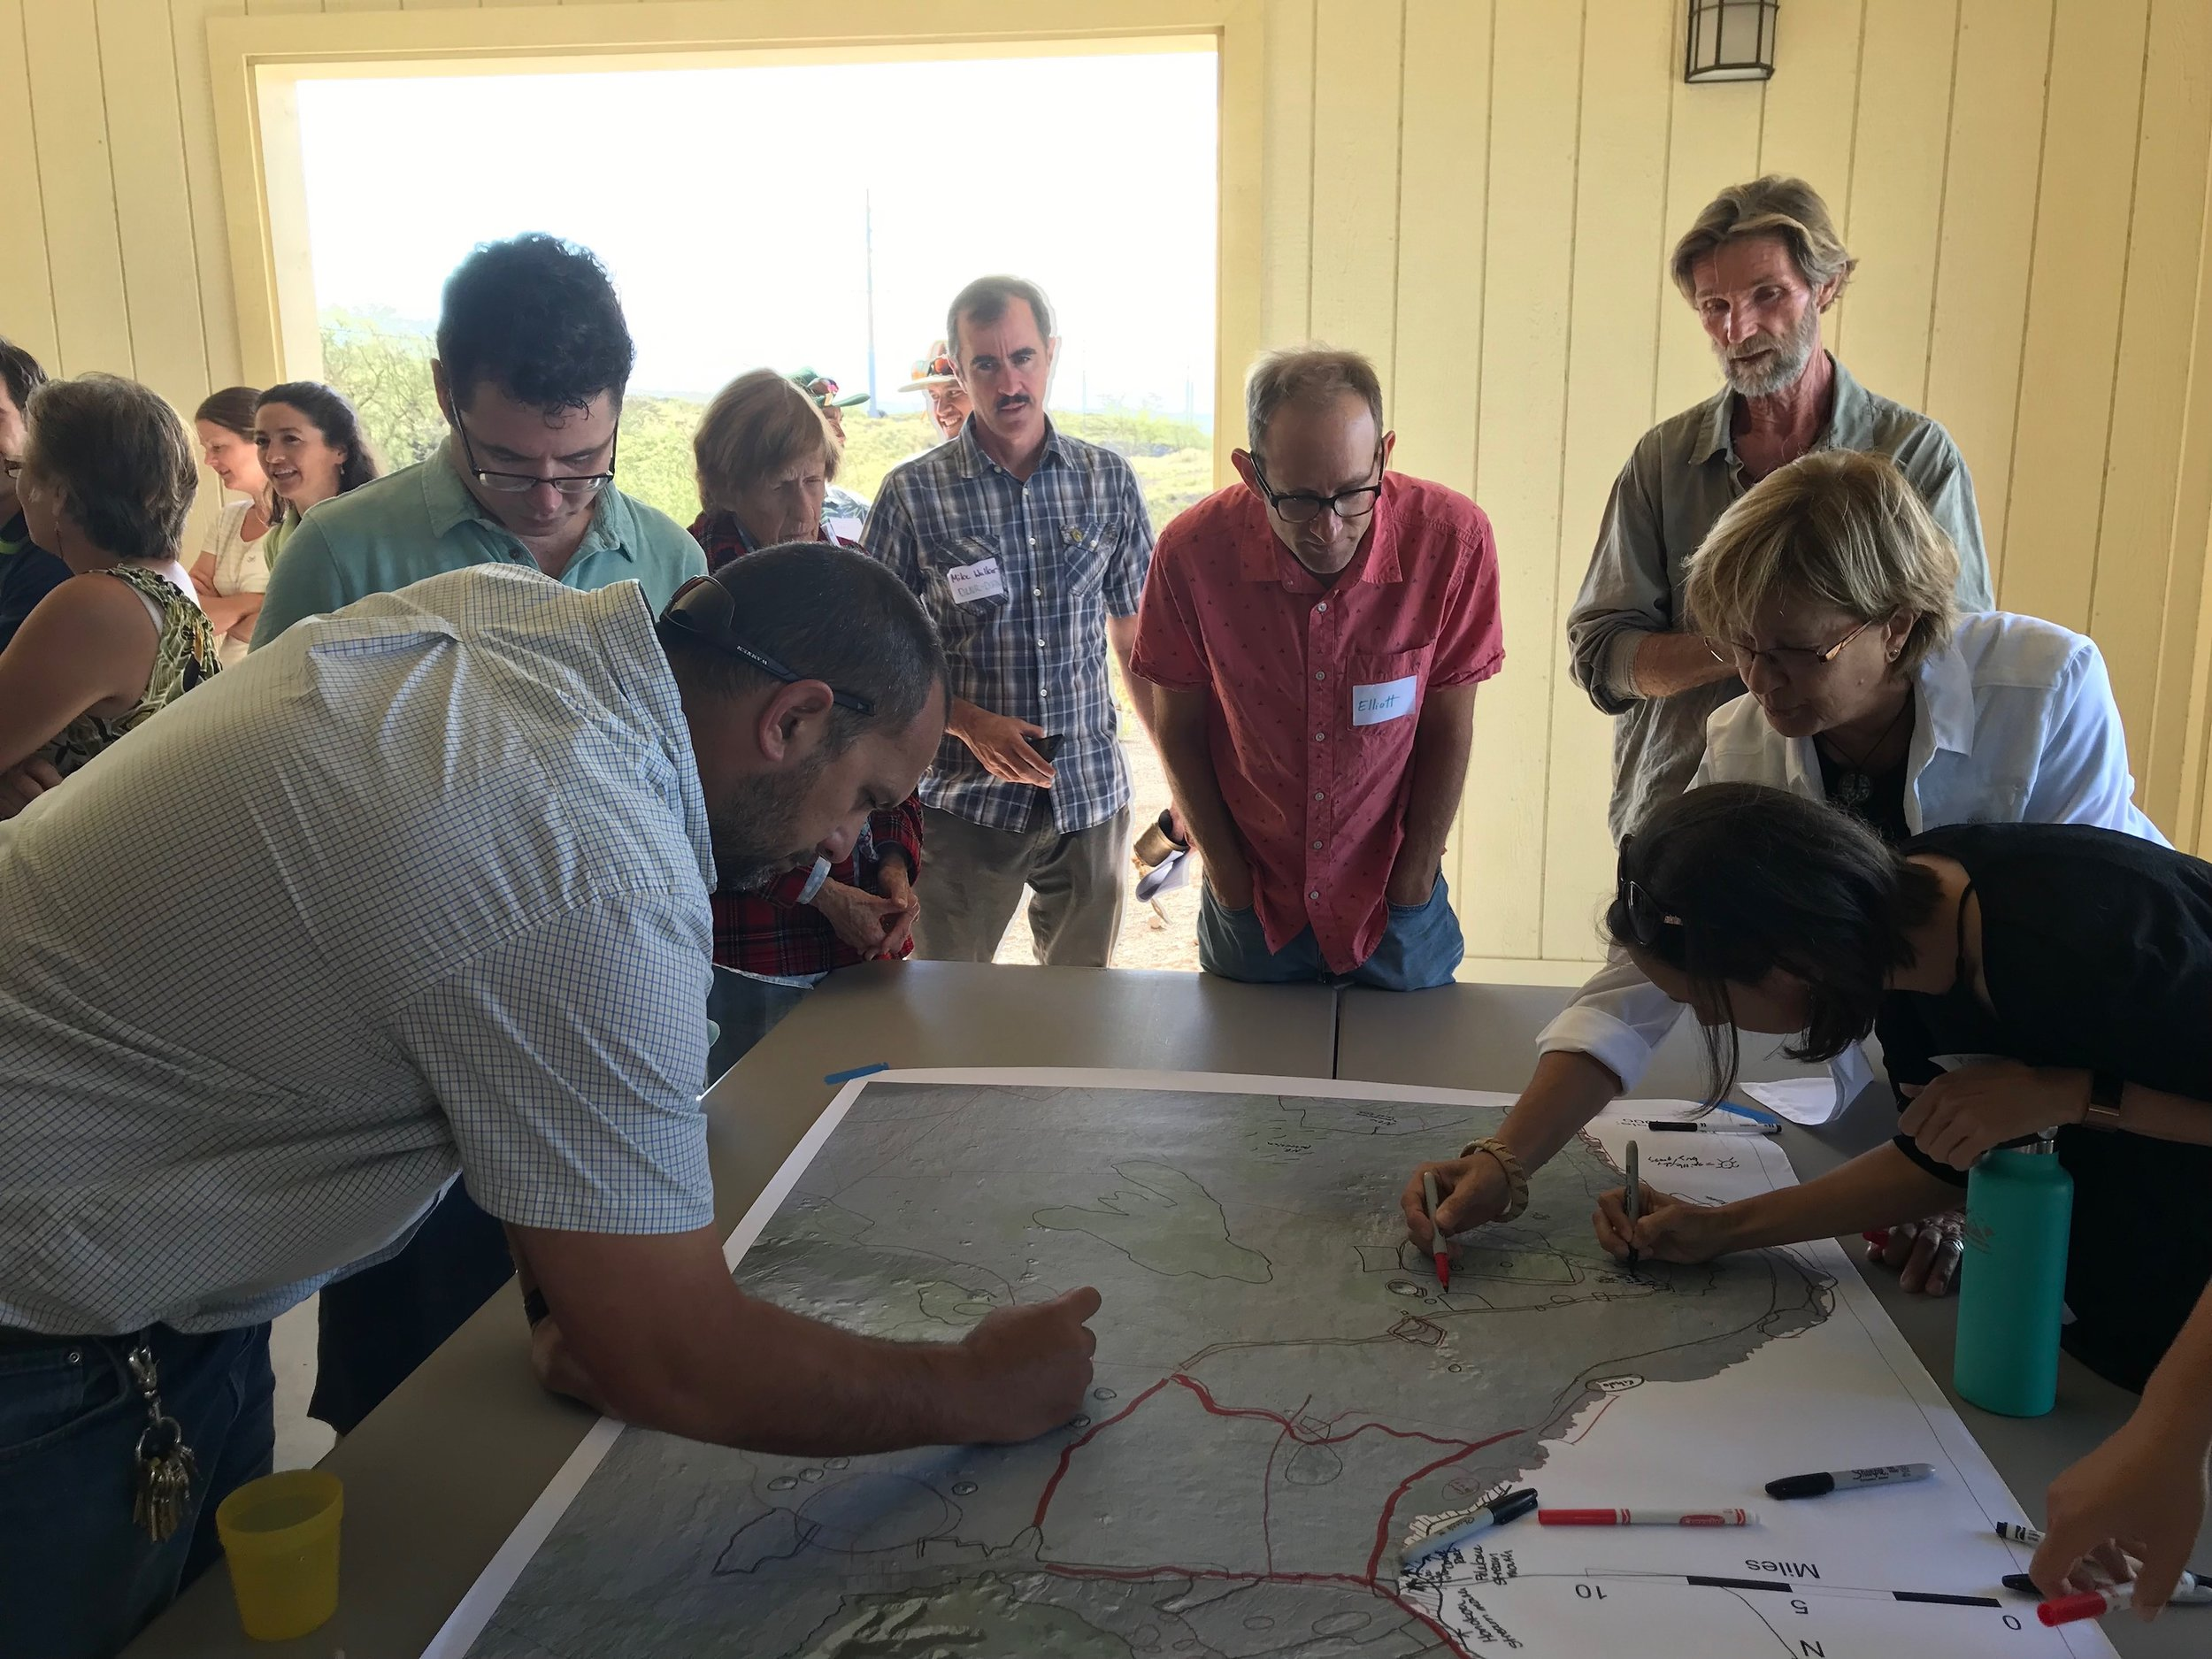 Hawaii Island Kailapa Vegetative Fuels Management Collaborative Action Planning Workshop_2_26_2019_48.jpg